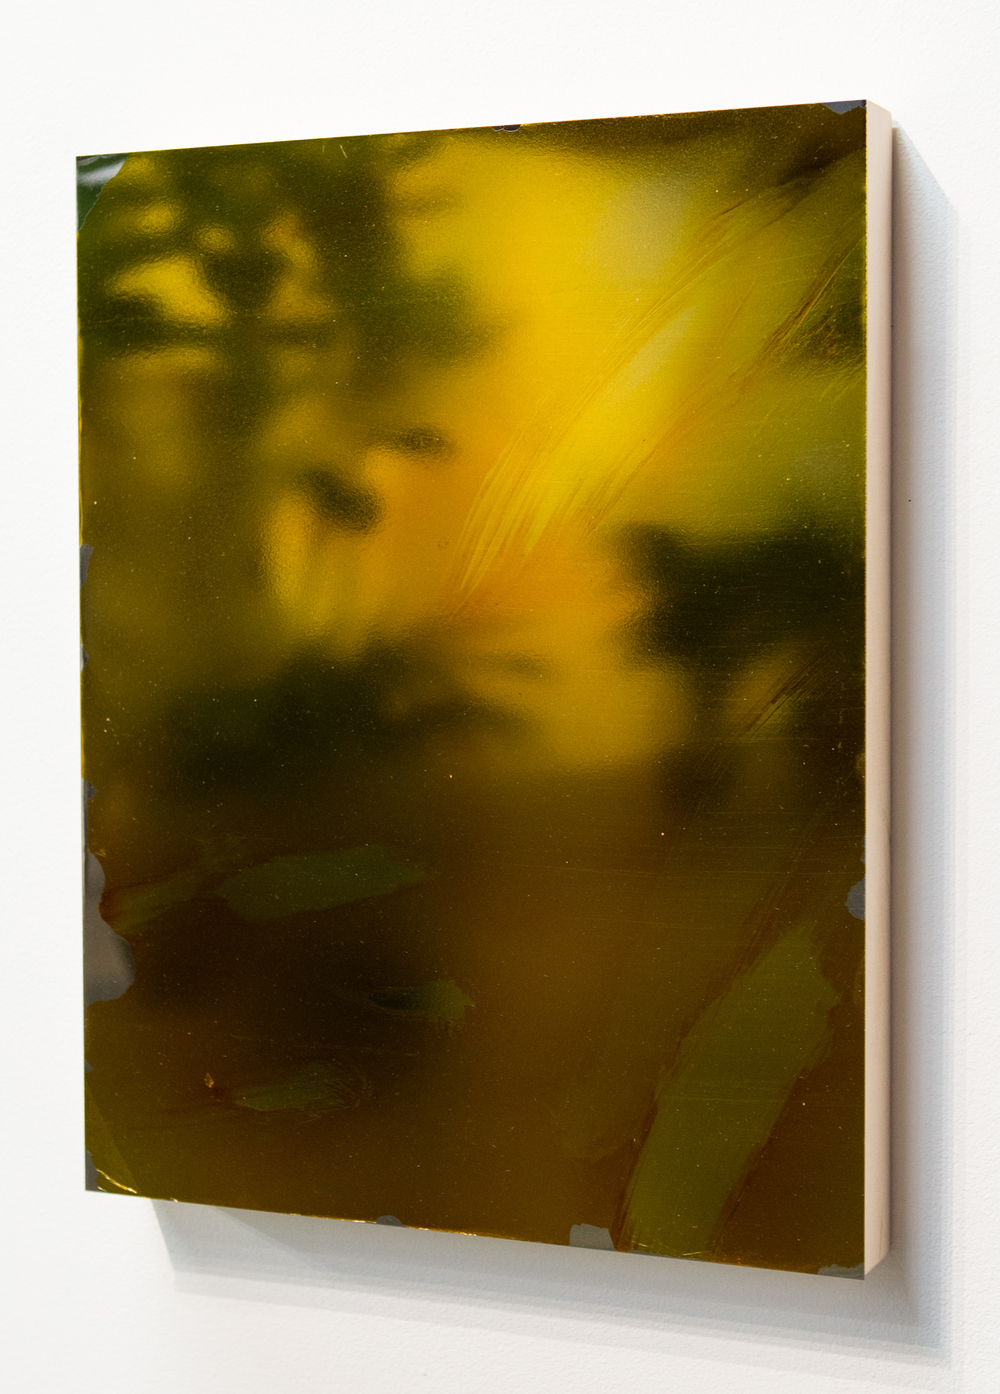 MLSL_13_Bunny, 2015  Gold tint on stainless steel  18 x 14 in (45.72 x 35.56 cm)